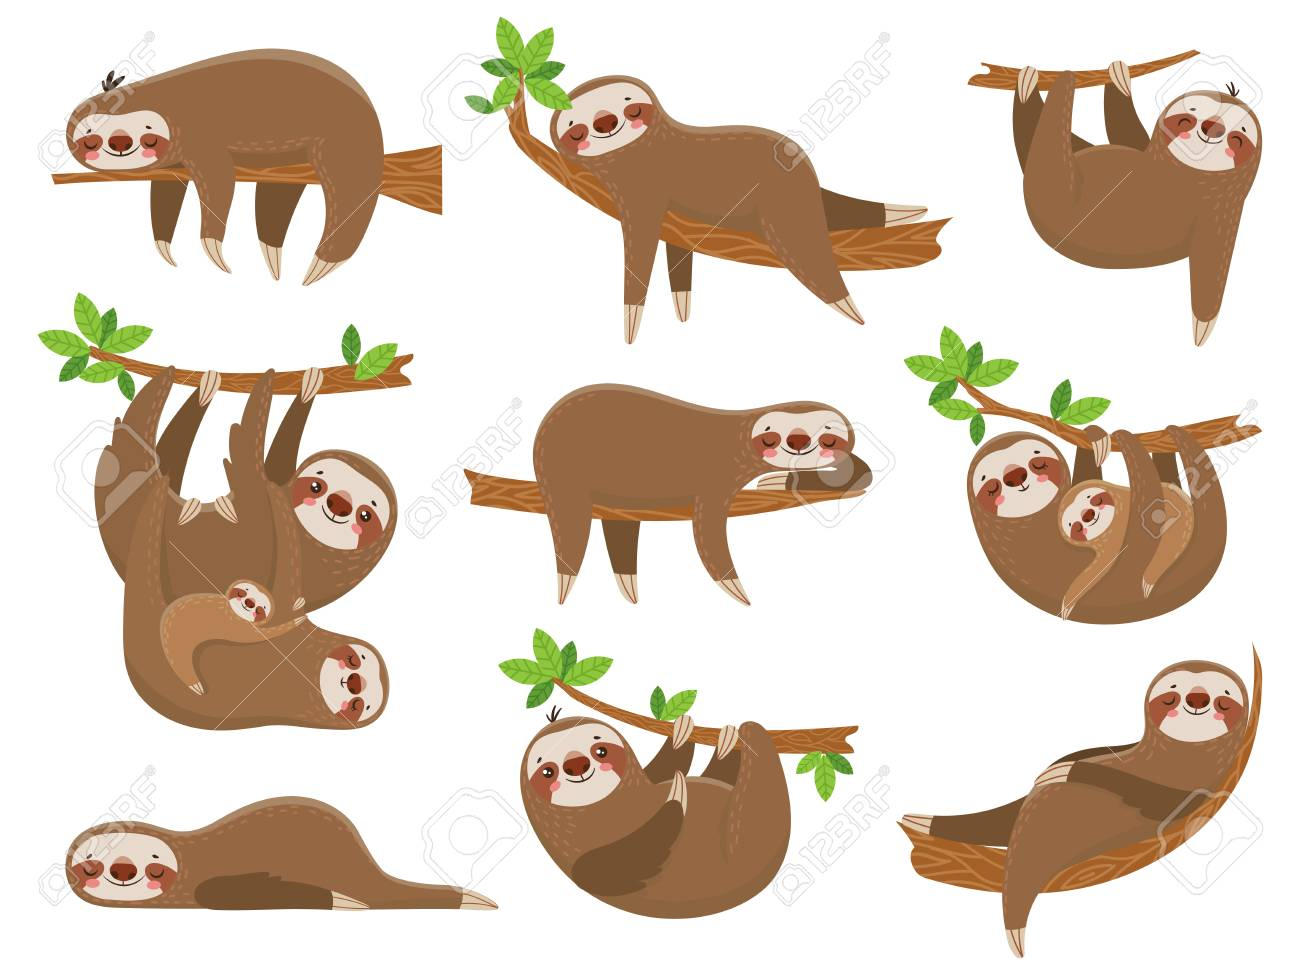 Cartoon sloths family. Adorable sloth sleepy animal at jungle rainforest different lazy sleeping. Funny brown cute animals happy sleep on tropical forest trees vector icons isolated set - 114949039